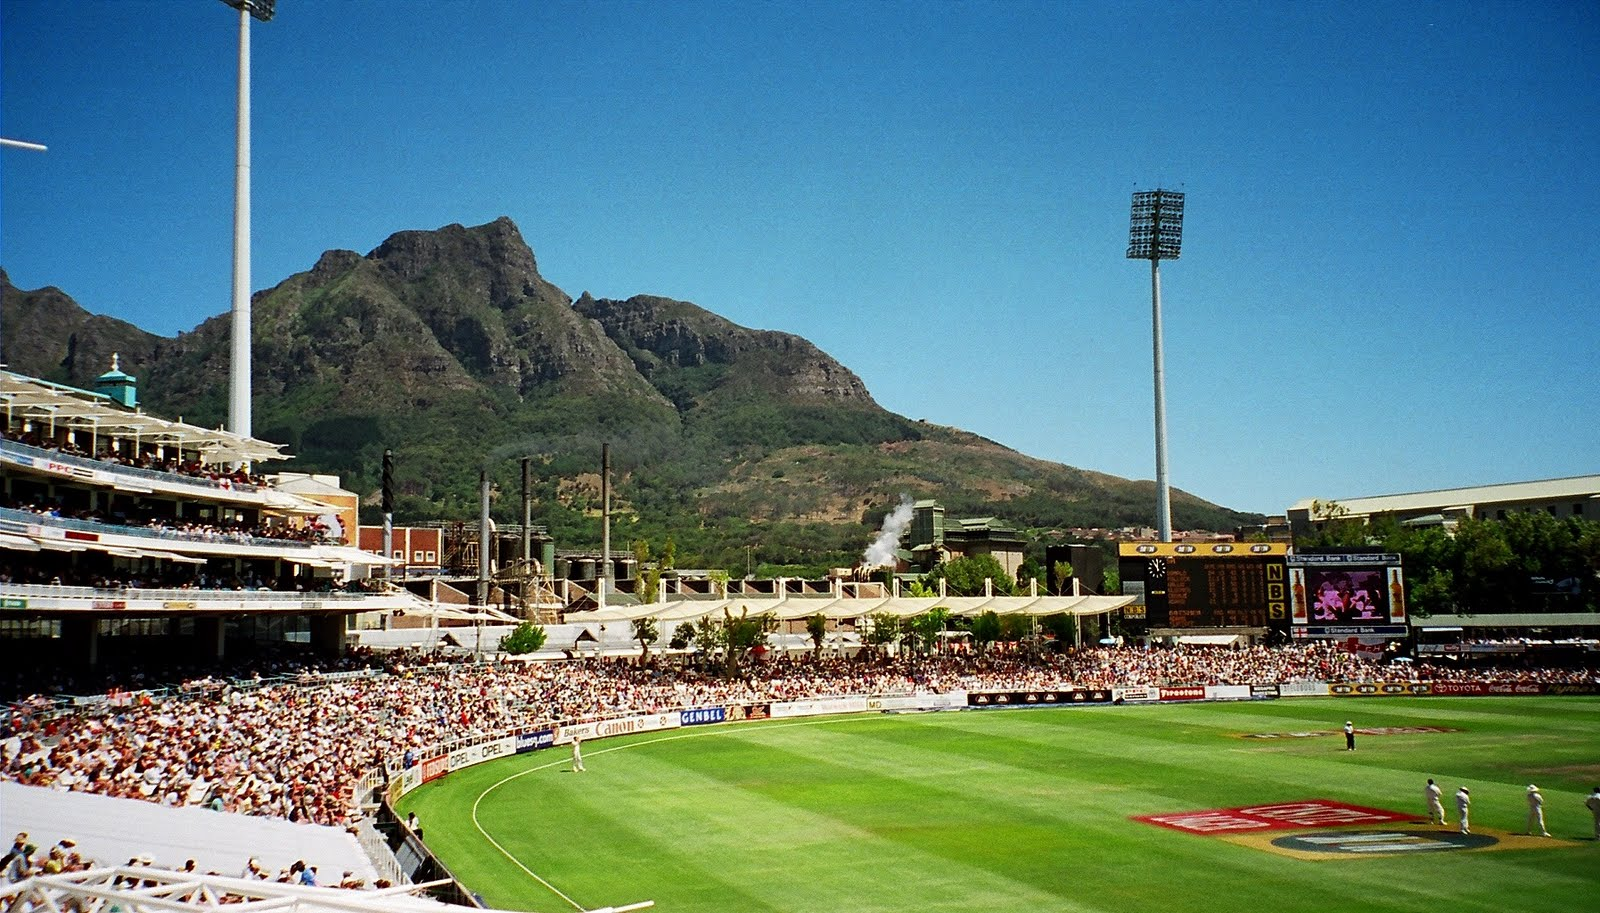 Craze For Sports Top 10 Cricket Stadiums In The World